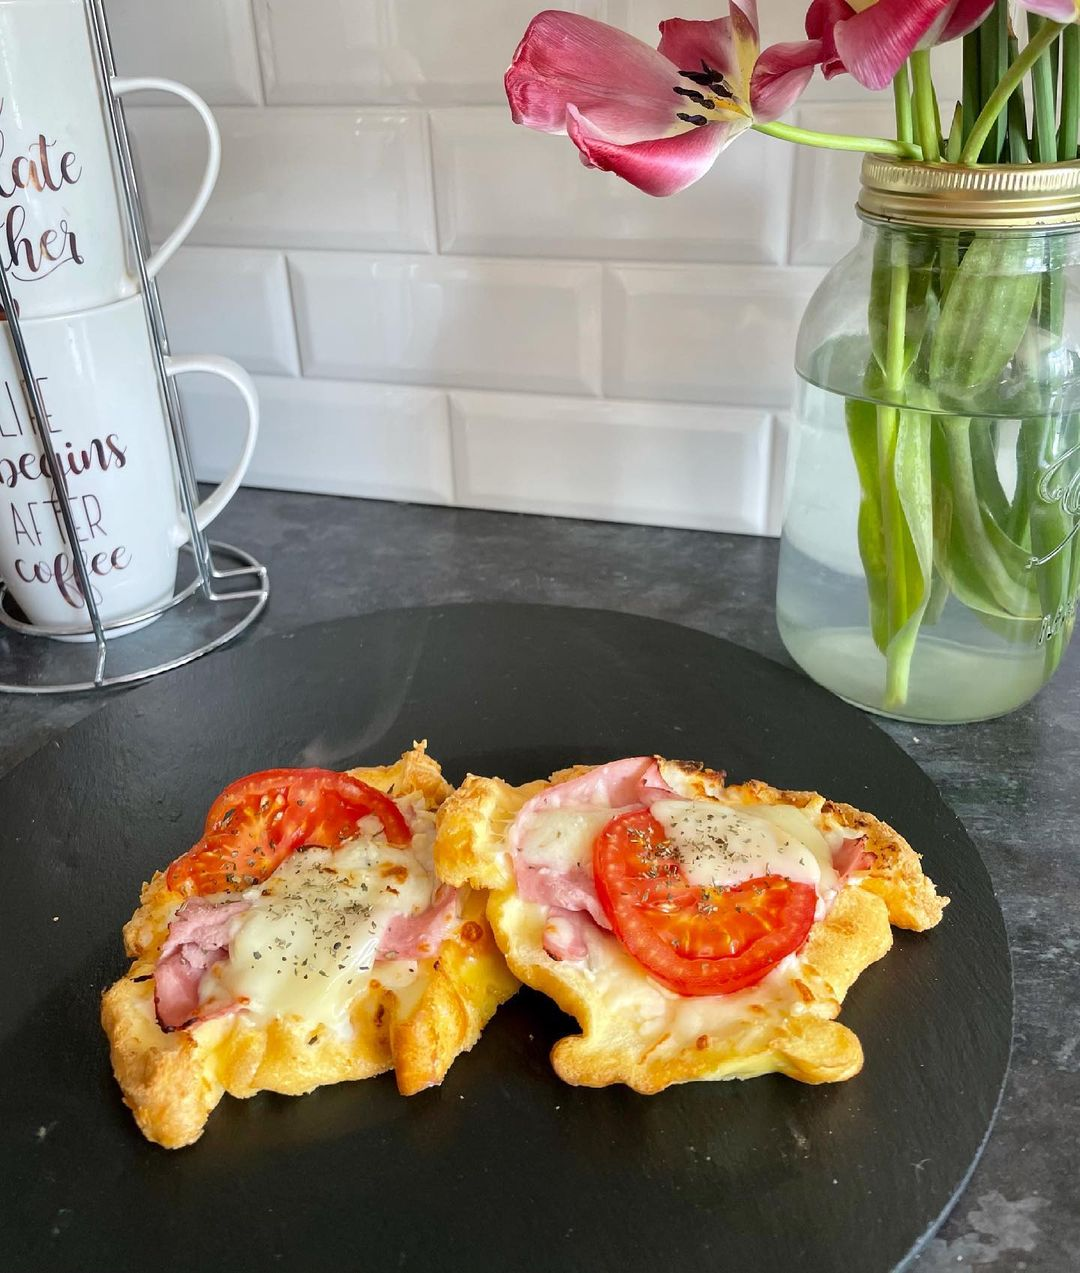 Keto-friendly, low carb cheese on toast